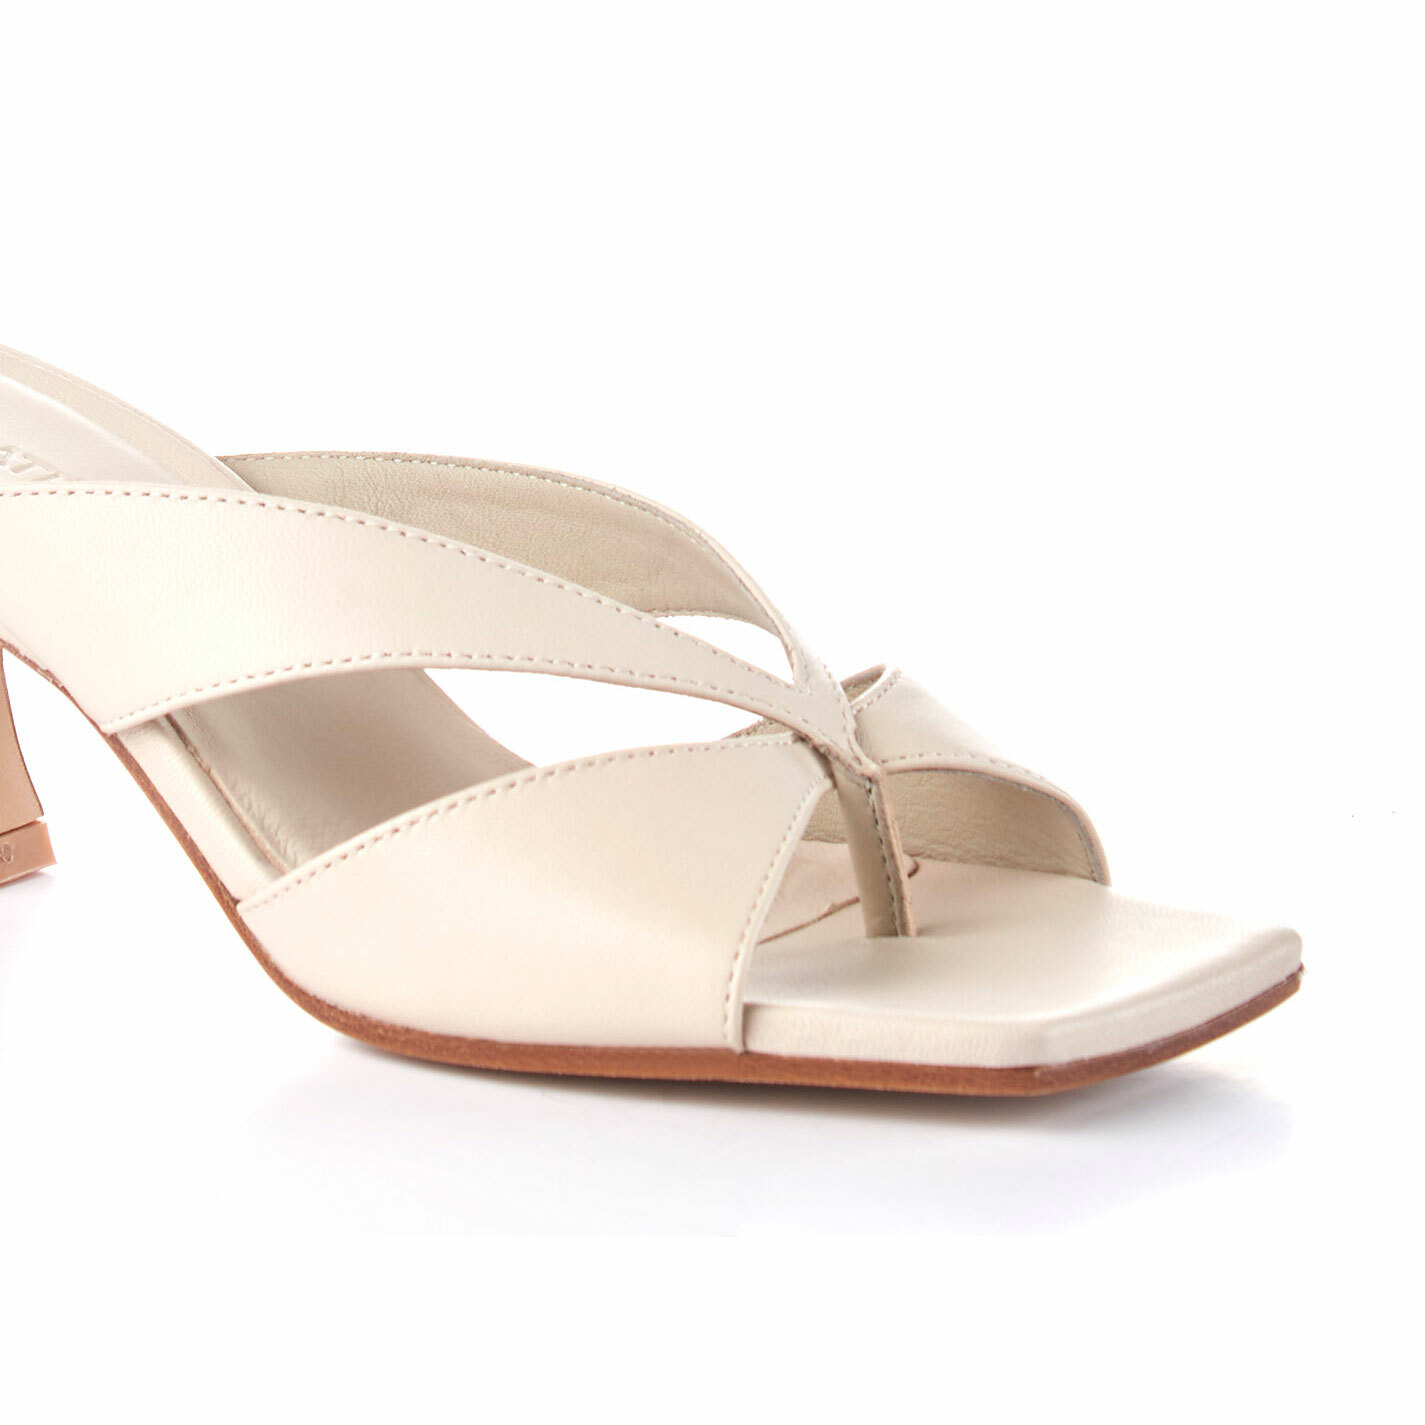 Ivory-coloured sandals with spool heel